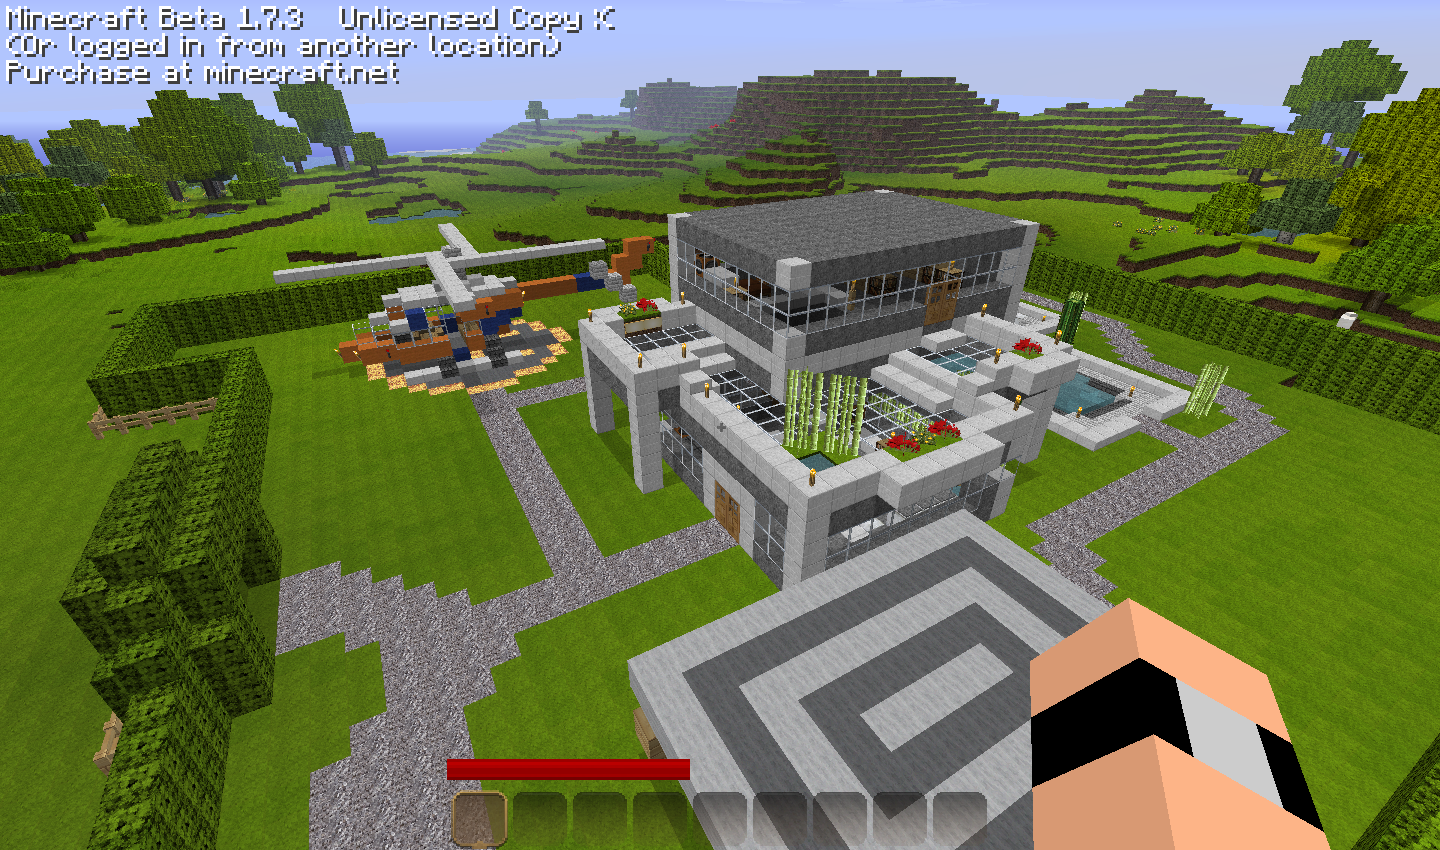 Extrem Video minecraft comment faire une maison moderne - L'impression 3D EM94